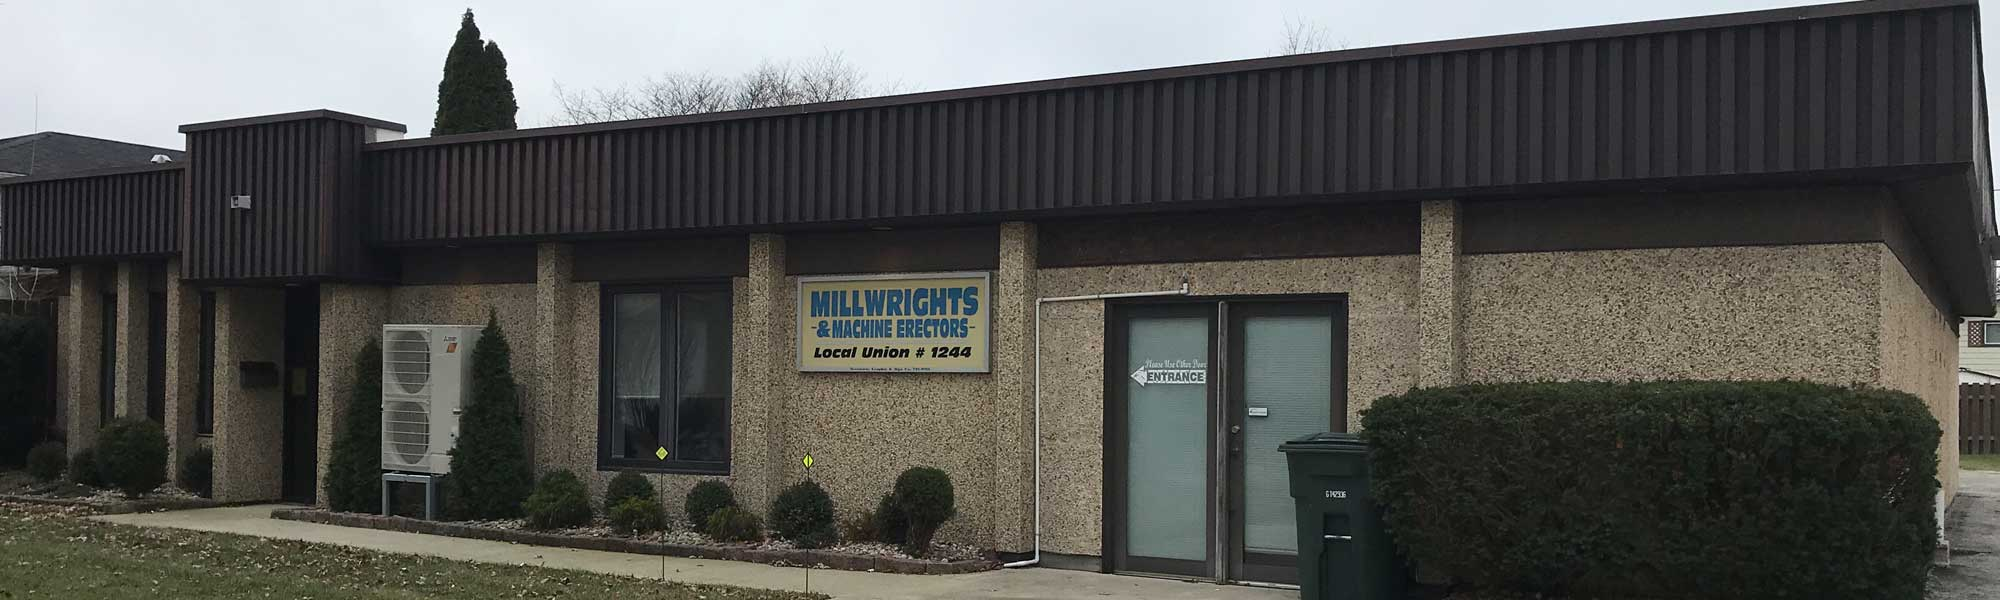 Contact Millwright Local 1244